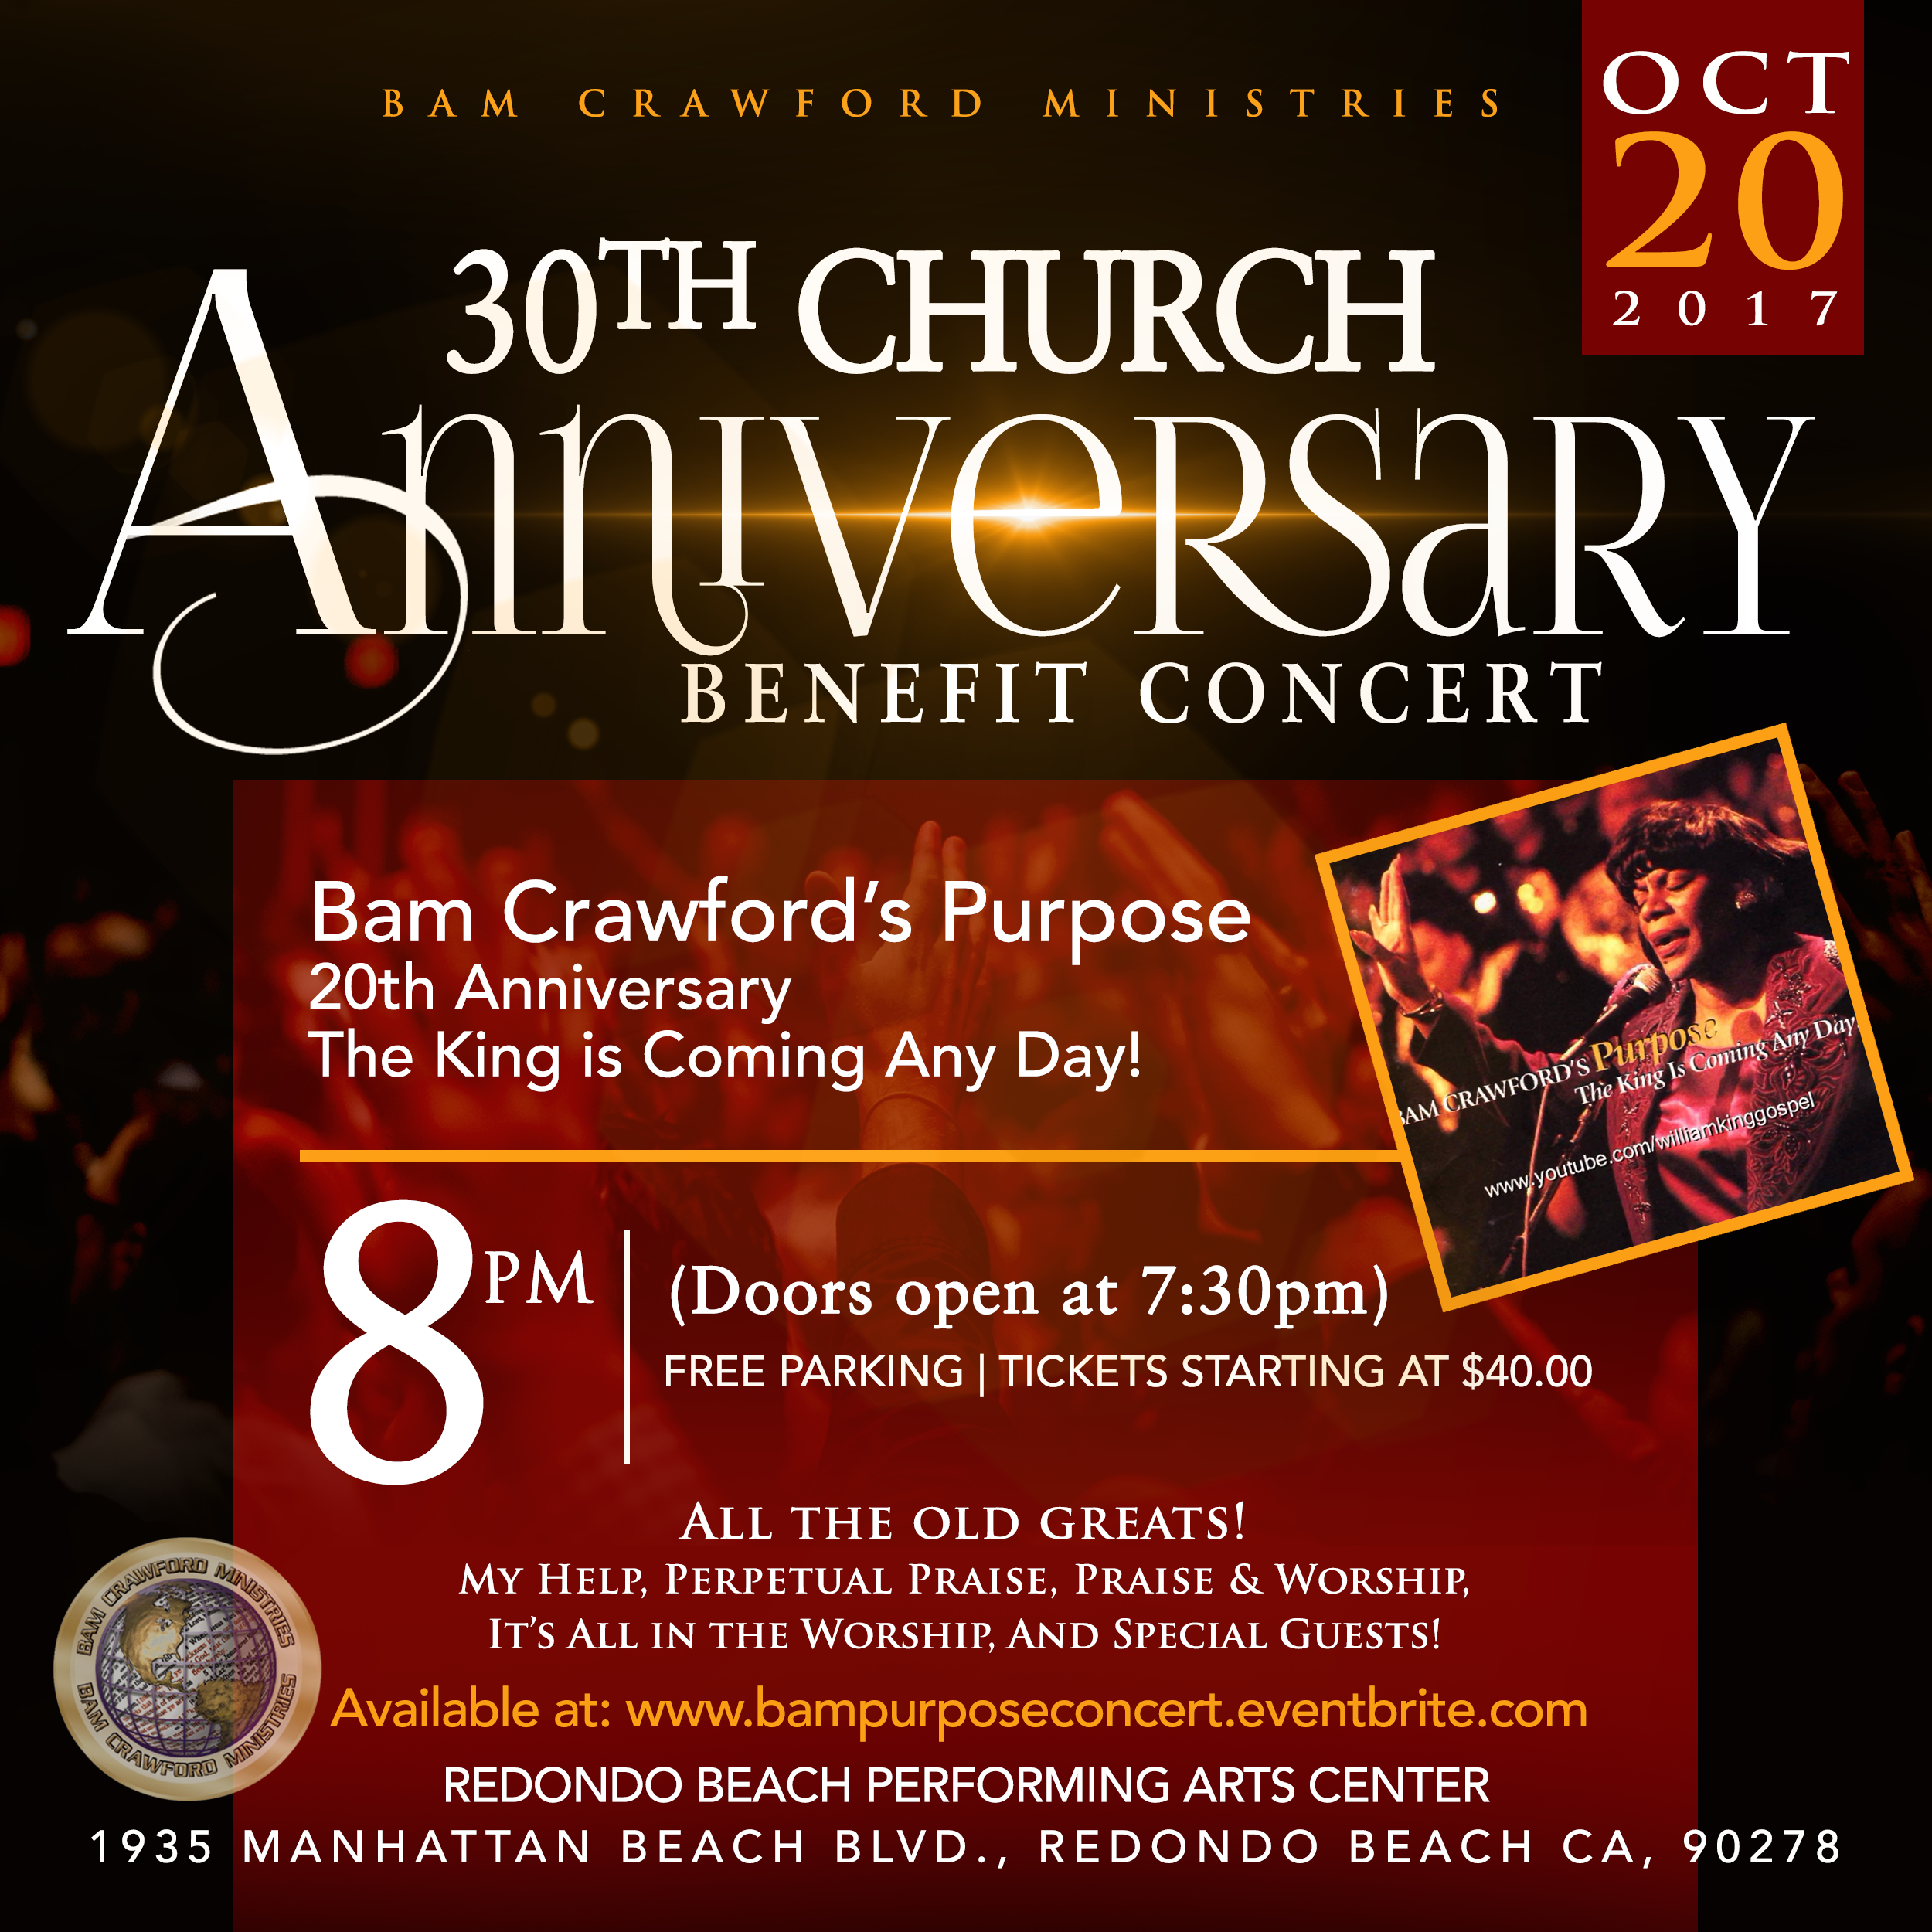 30th Church Anniversary Benefit Concert